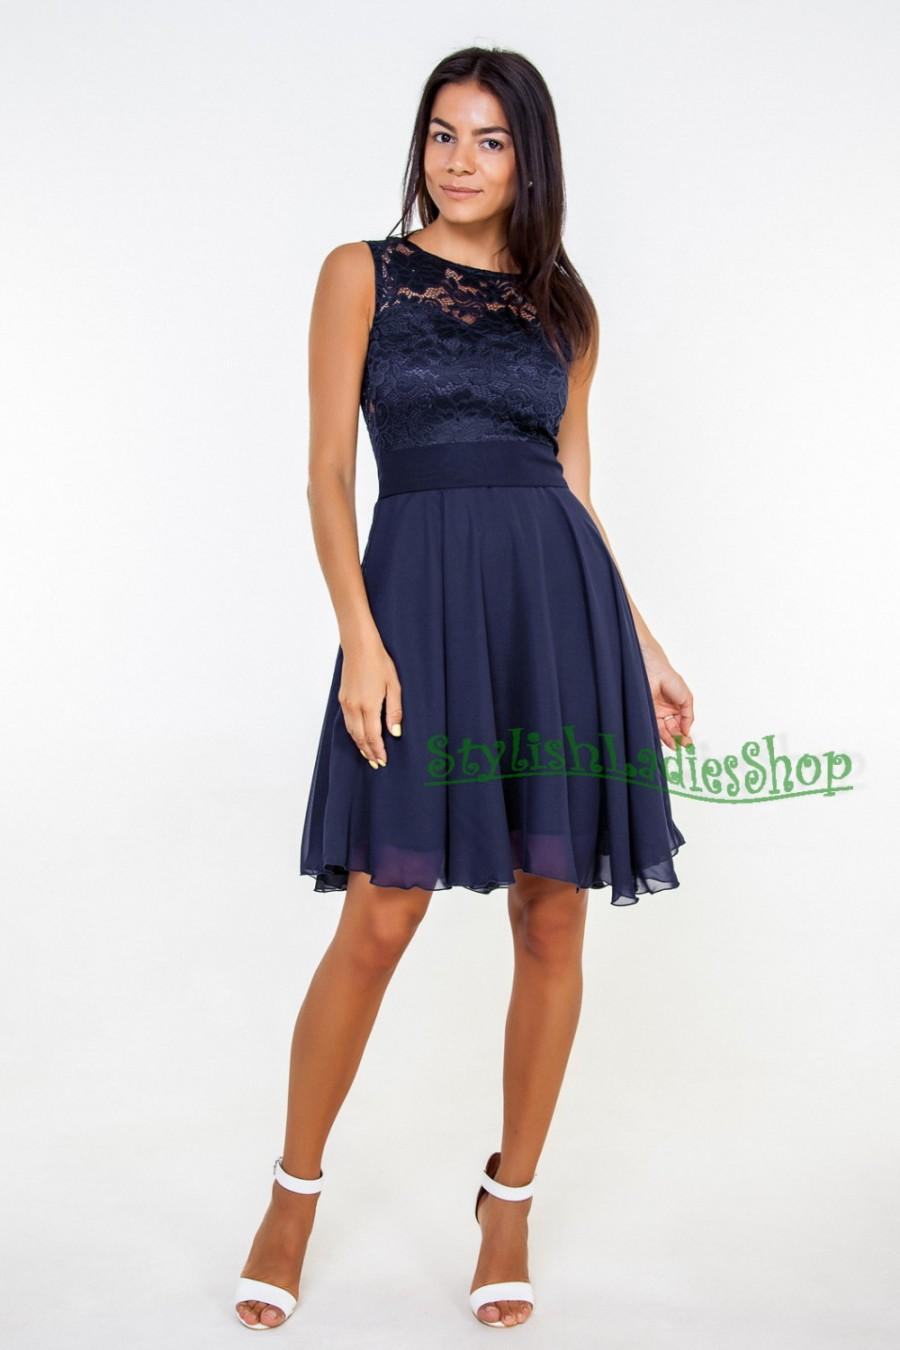 Navy blue bridesmaid dress navy lace dress blue dress for Navy blue dresses for wedding